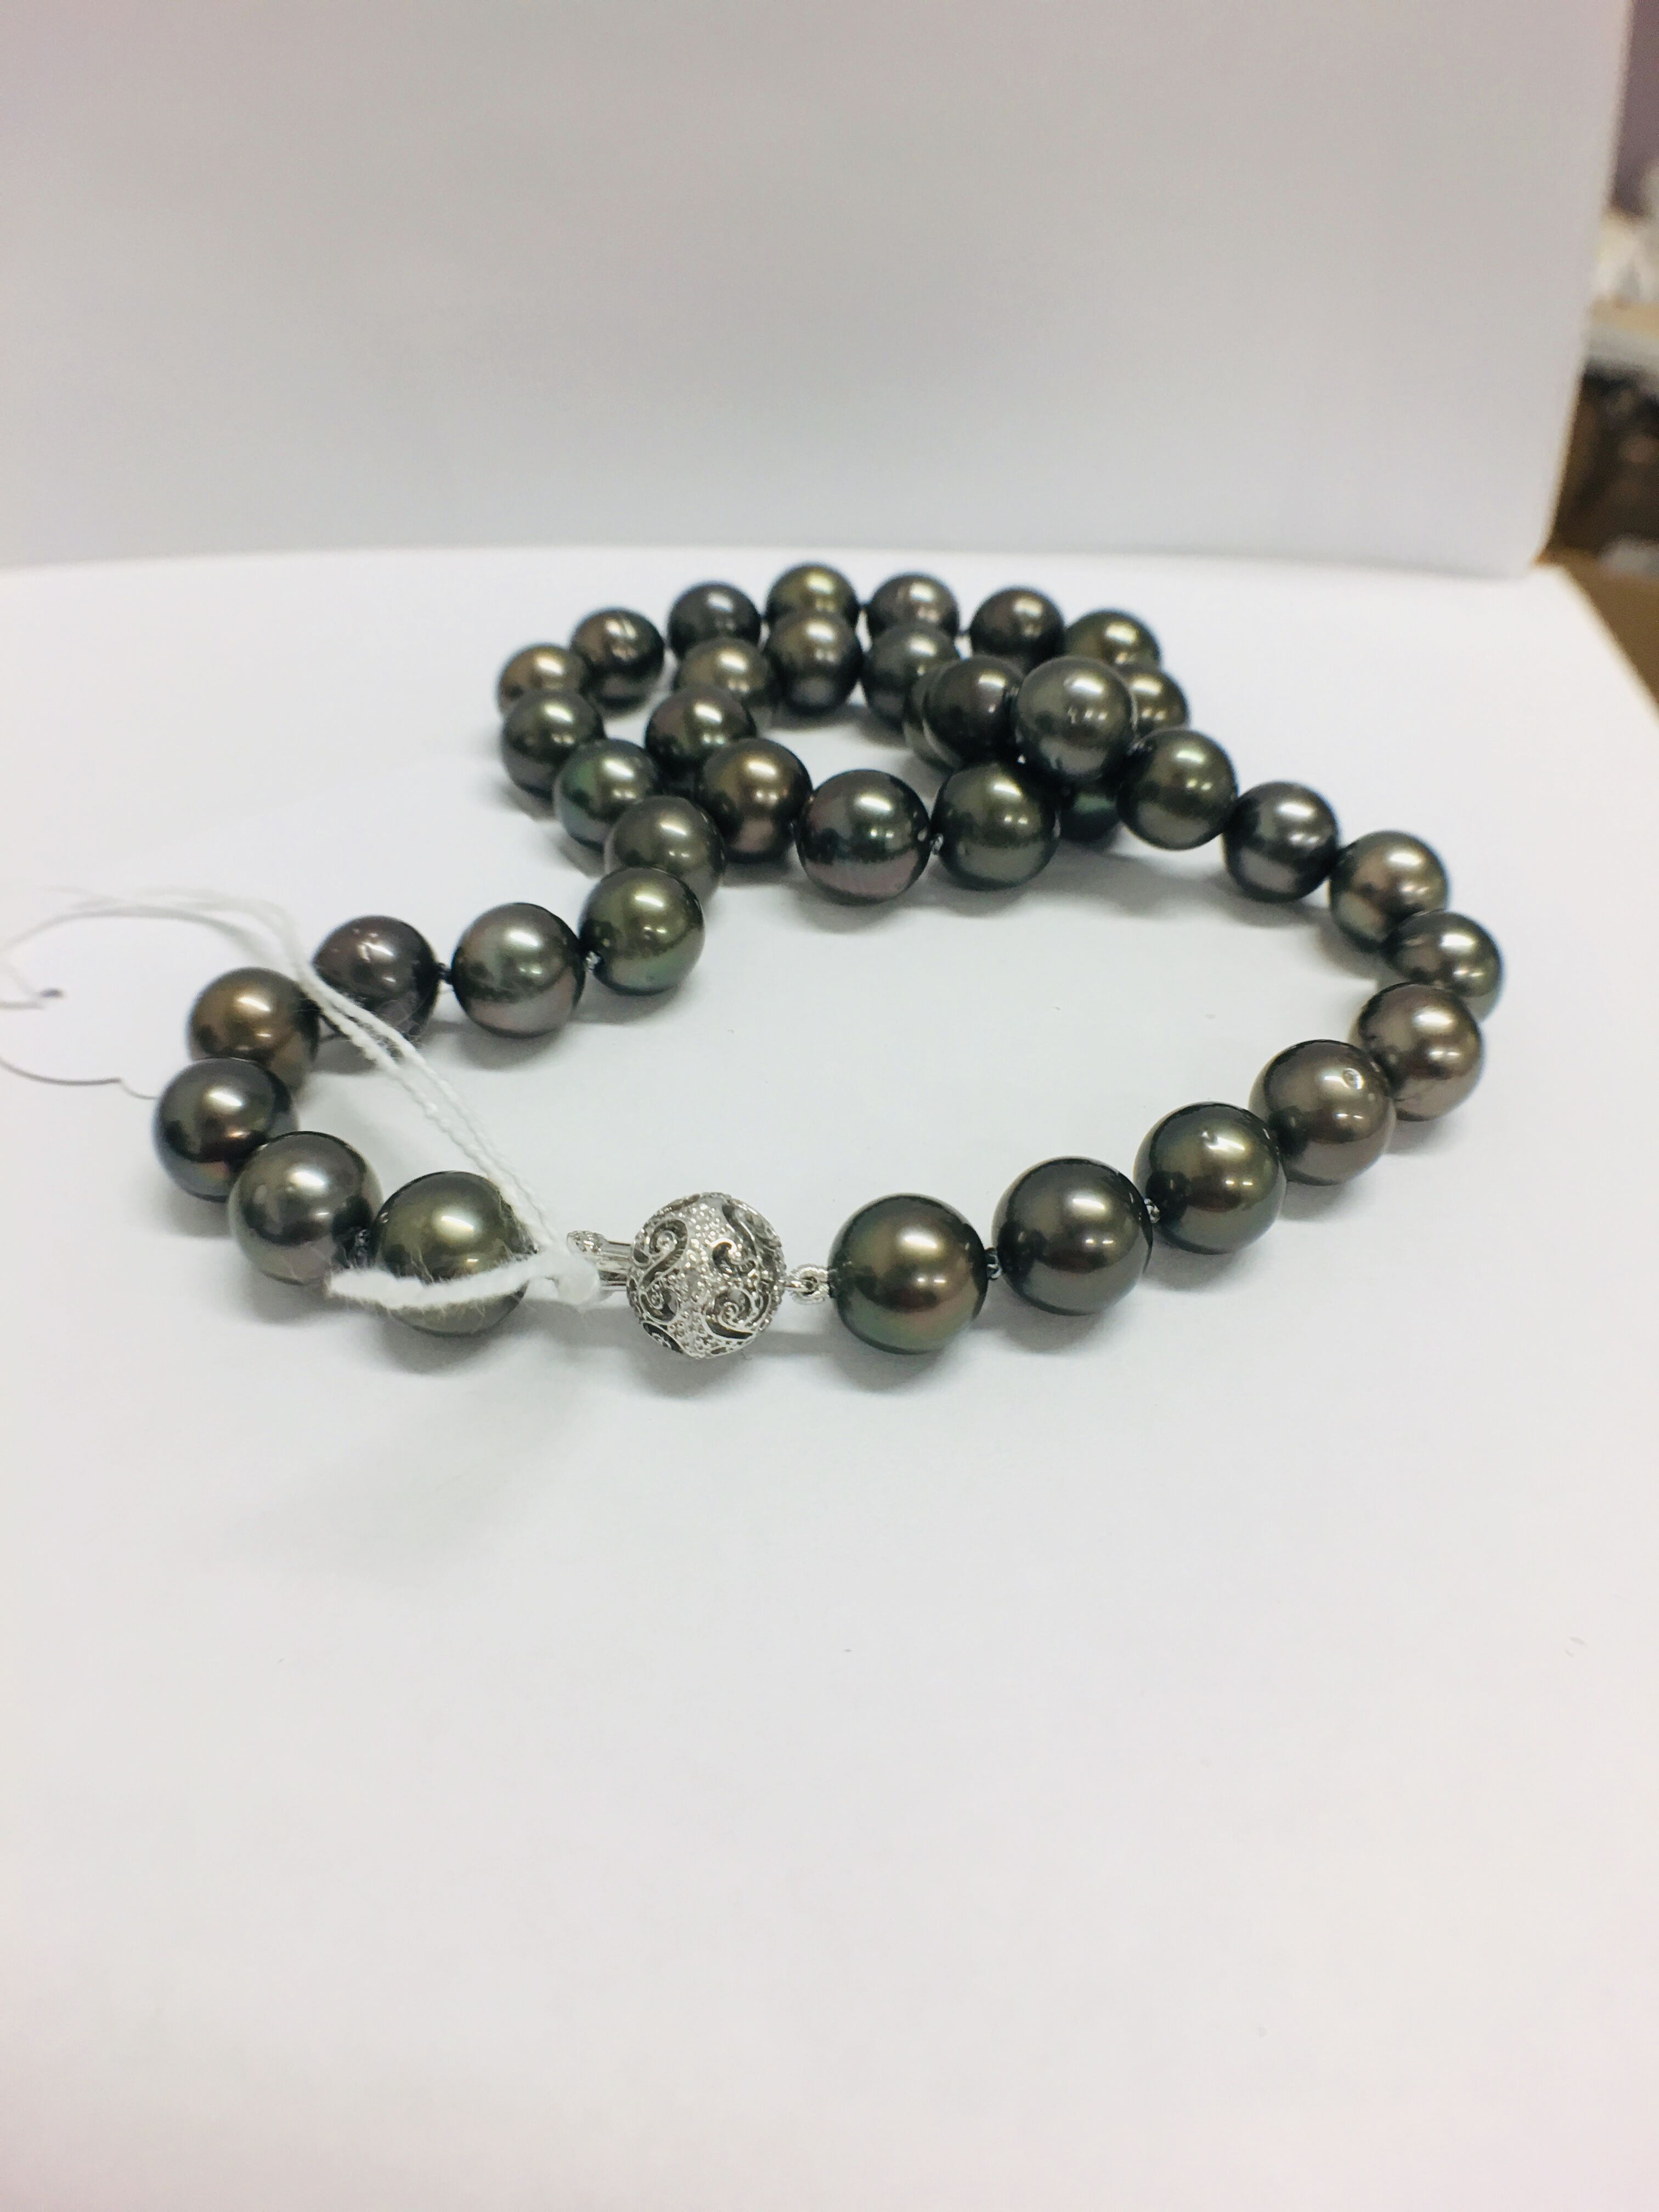 tahitian pearl necklace. - Image 5 of 9